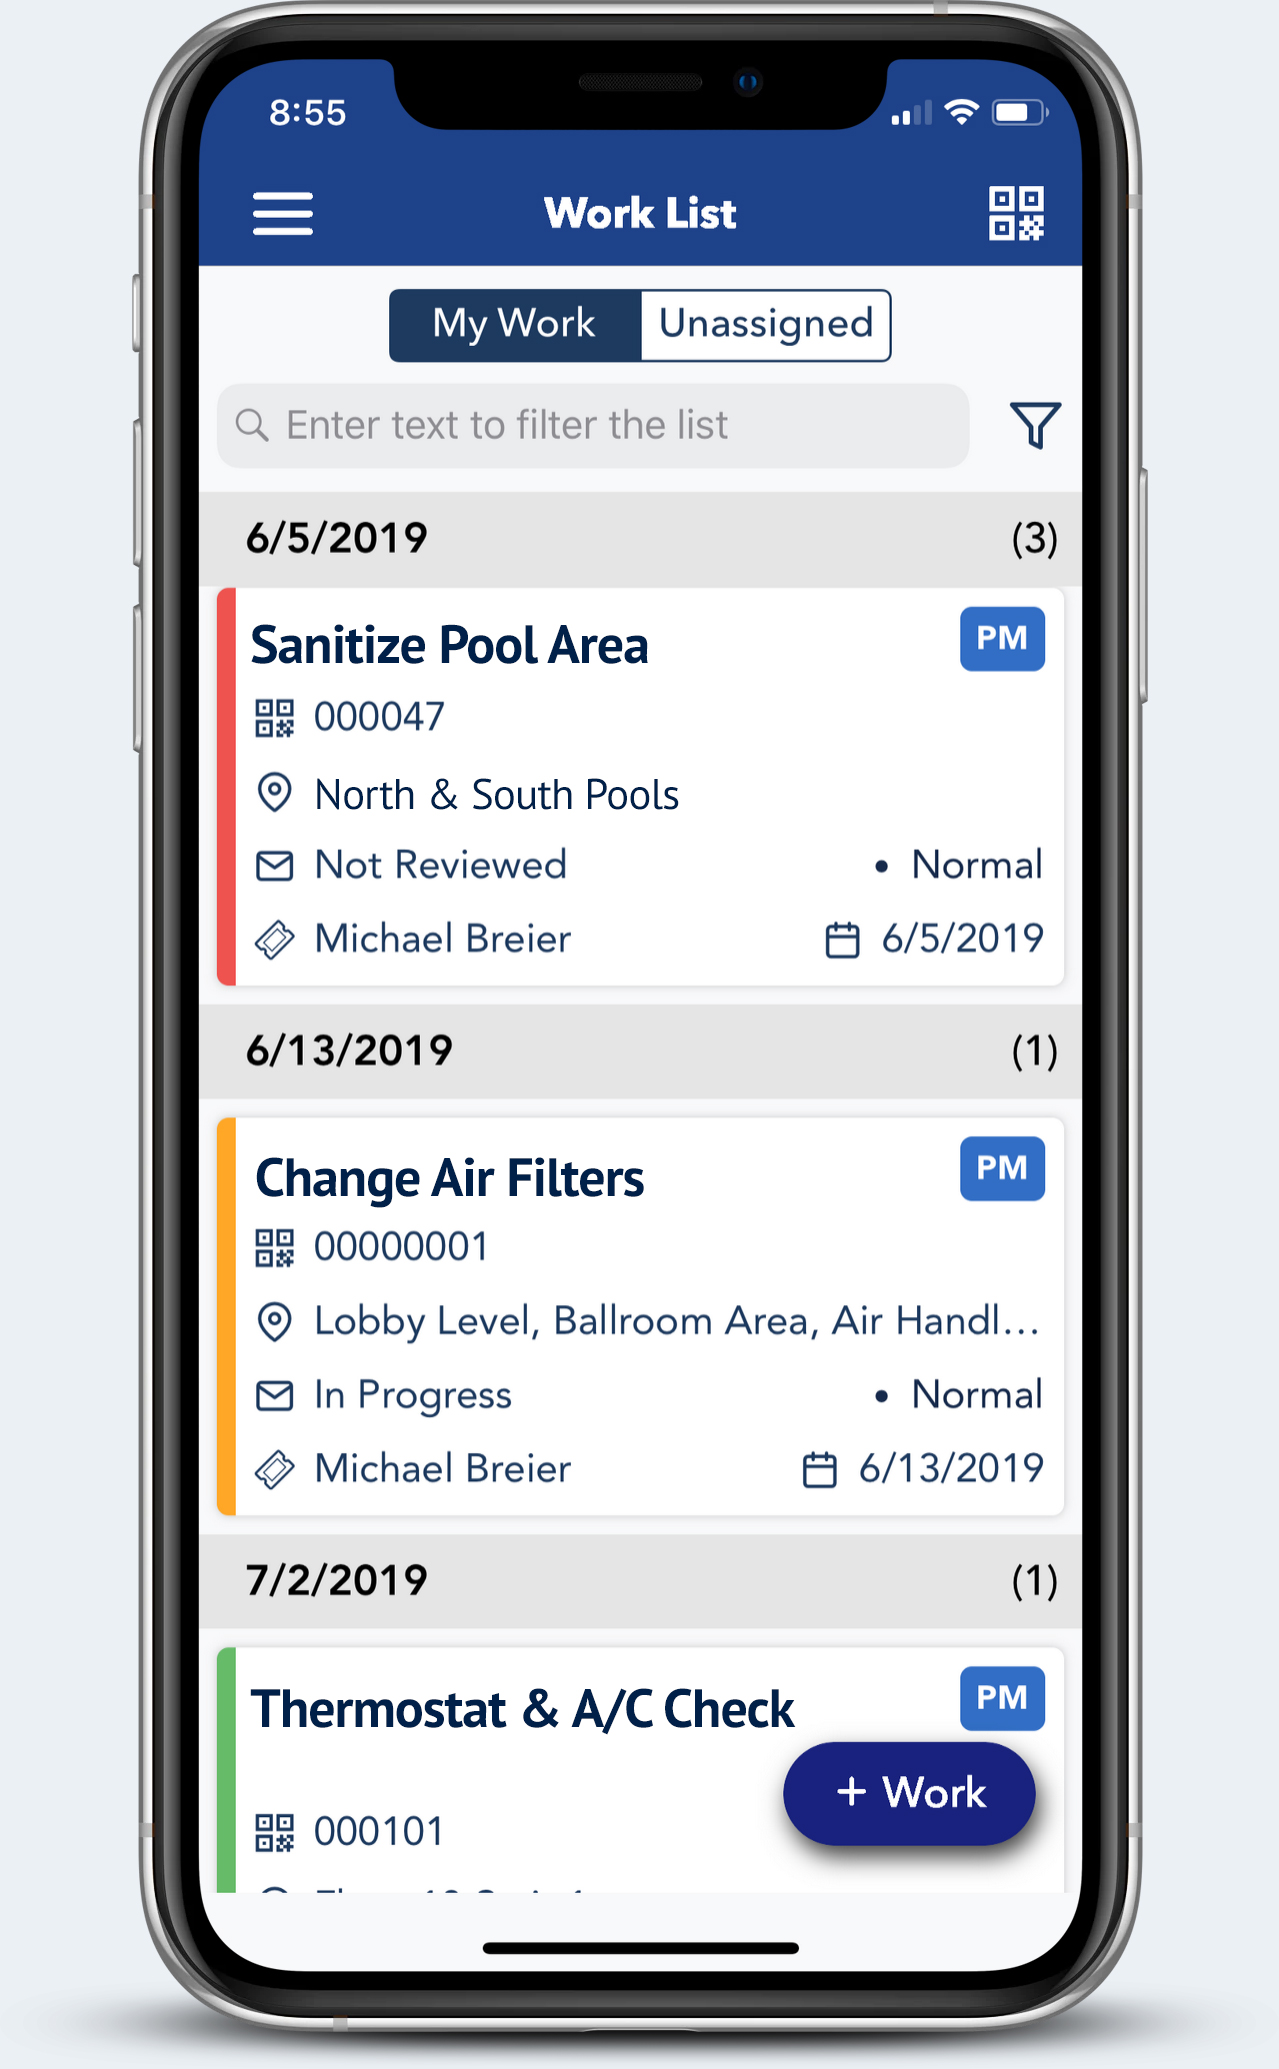 Transcendent Maintenance Mobile App for Facility Management